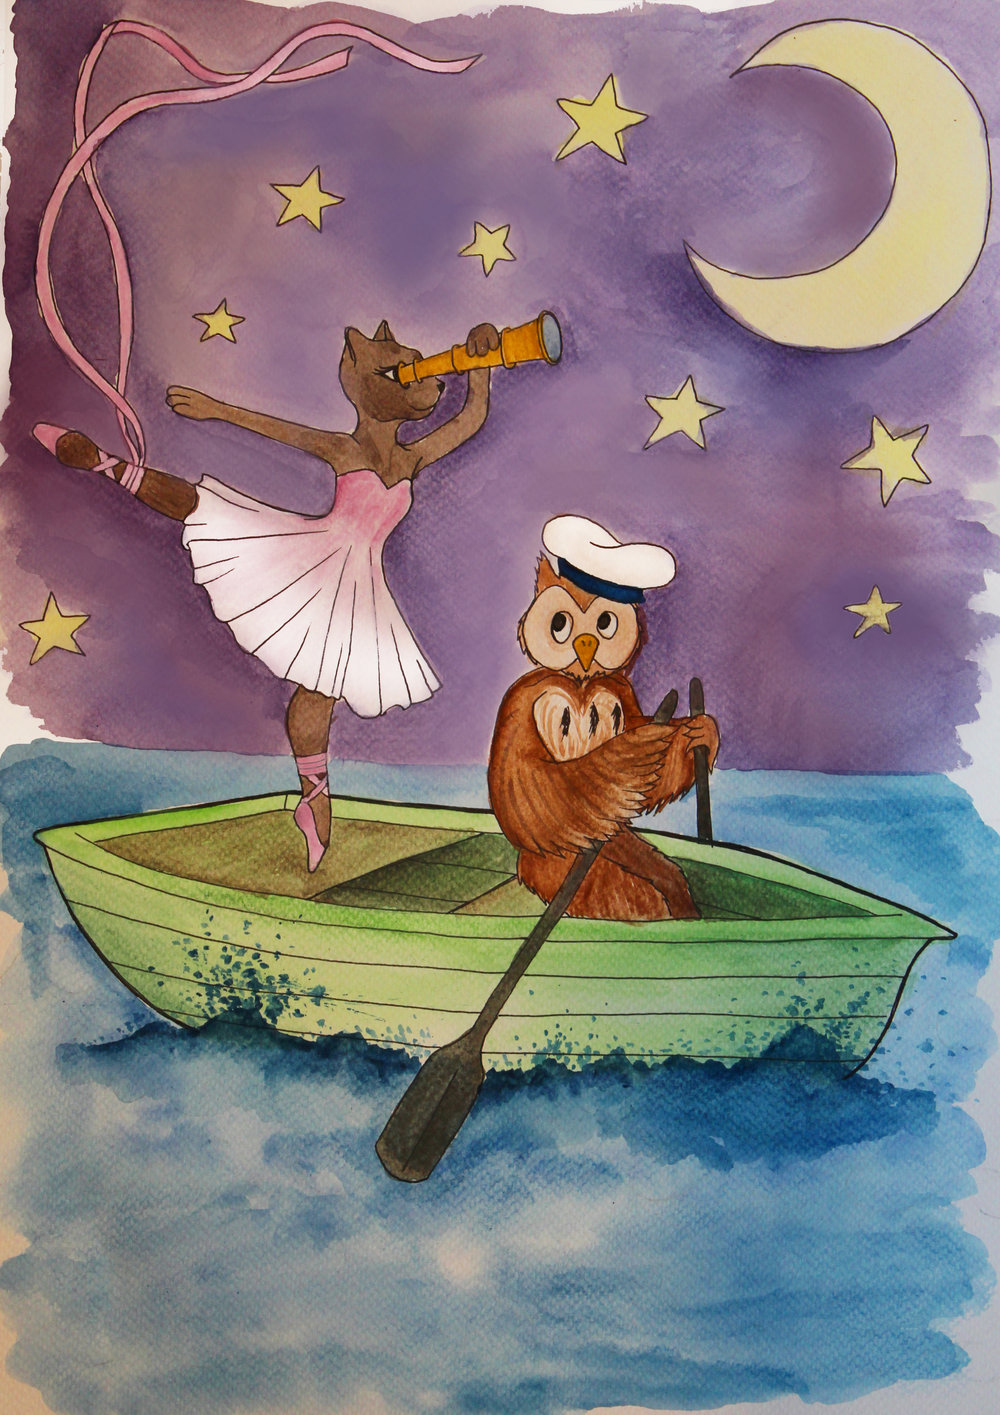 The Owl and the Pussycat - is a gorgeous original family ballet, which takes a fresh and humorous look at the famous Lear poem